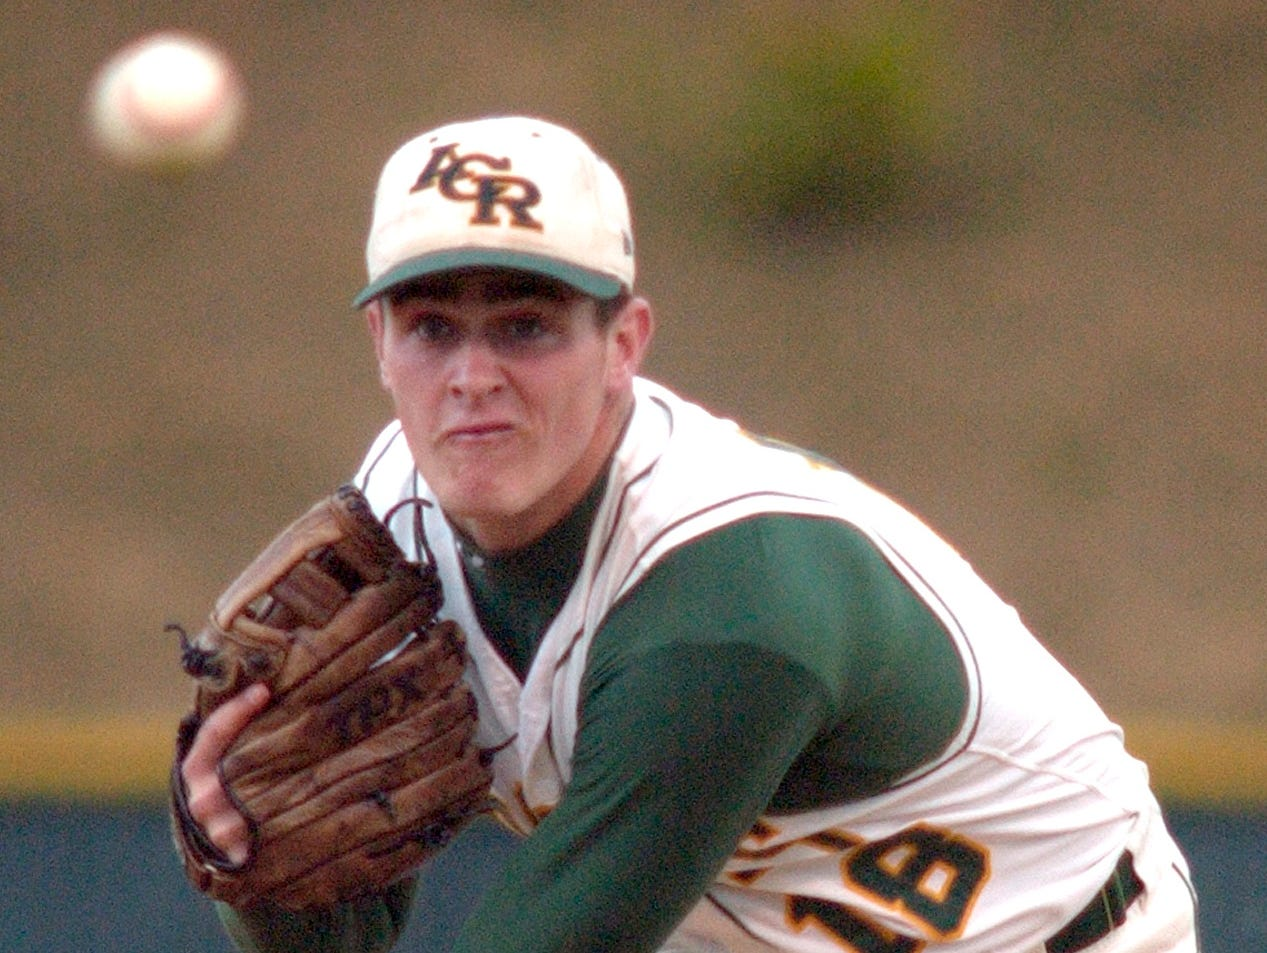 Blaine Howell graduated from Reynolds in 2006.